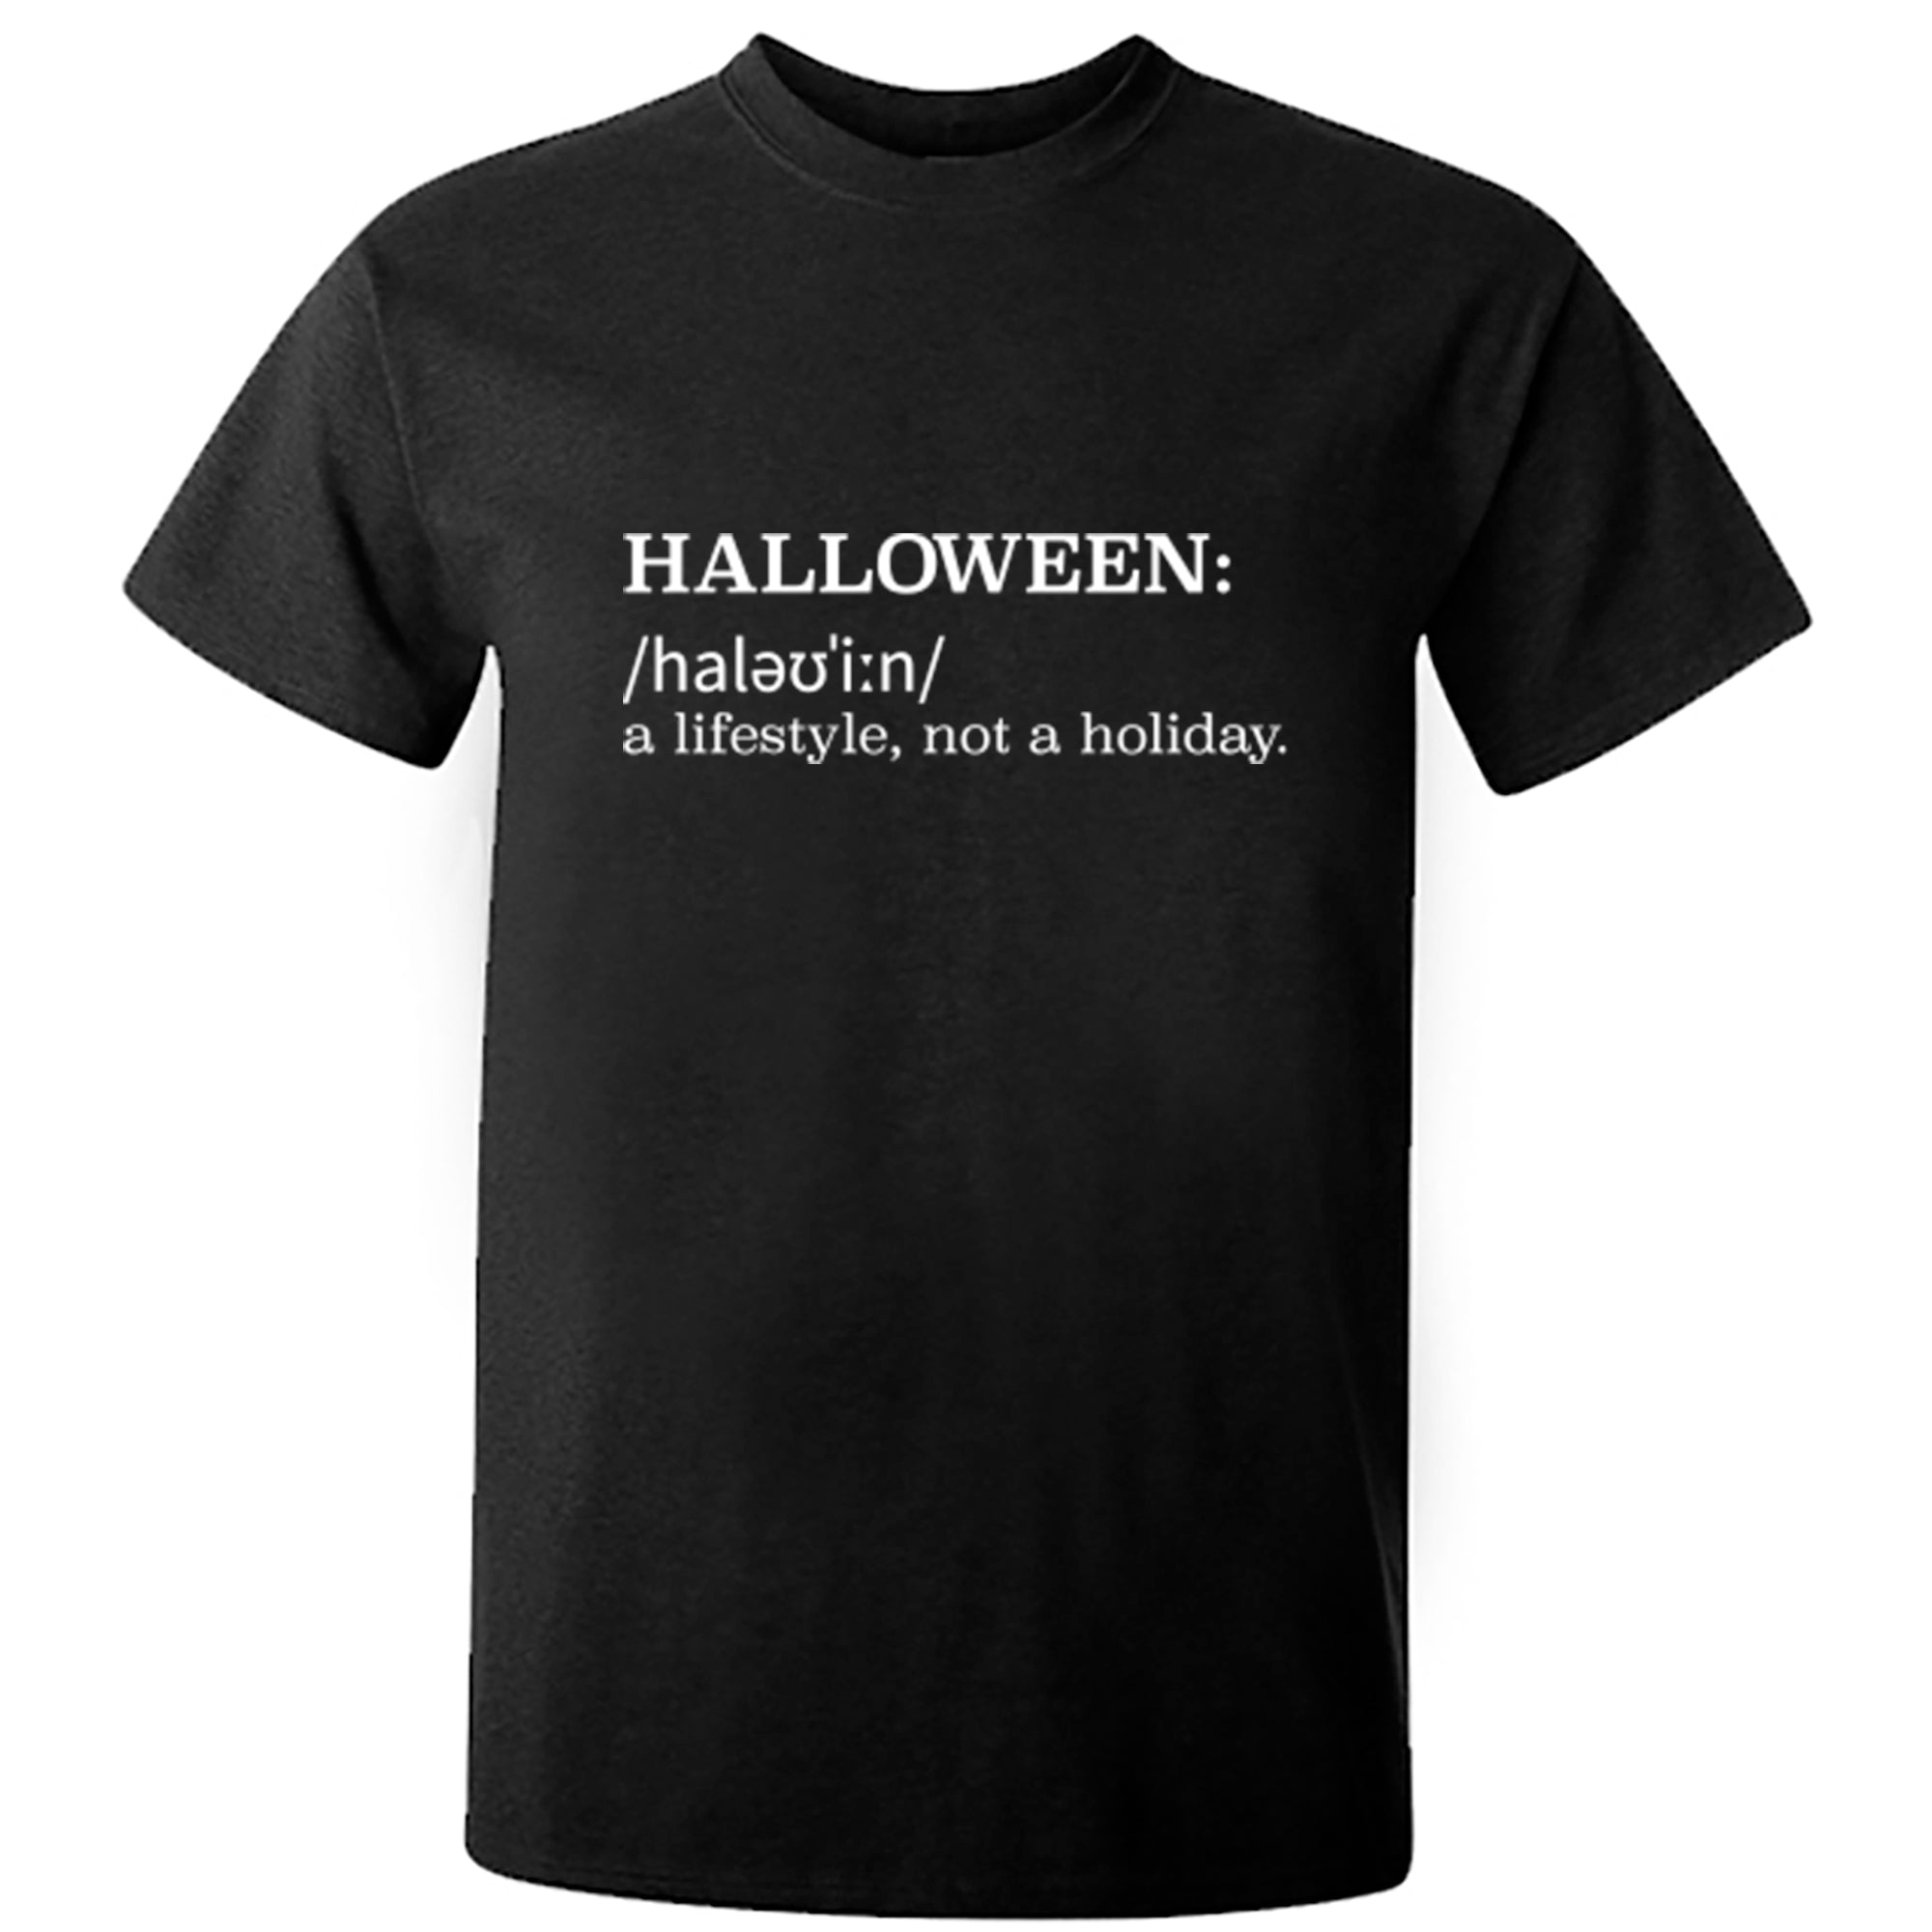 Halloween Definition Unisex Fit T-Shirt A0024 - Illustrated Identity Ltd.